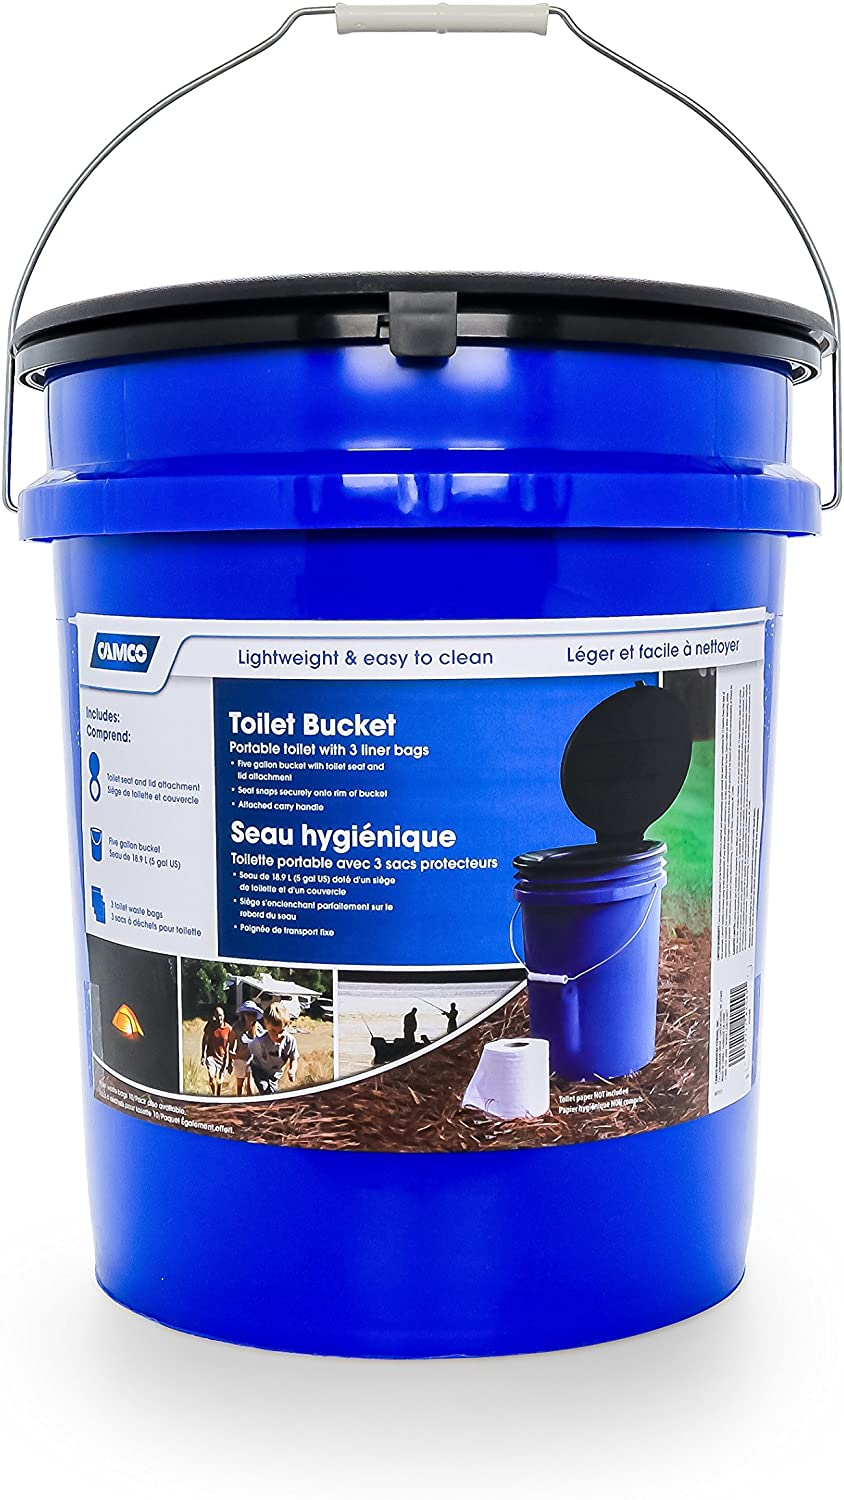 Camco Portable Toilet Bucket with Seat